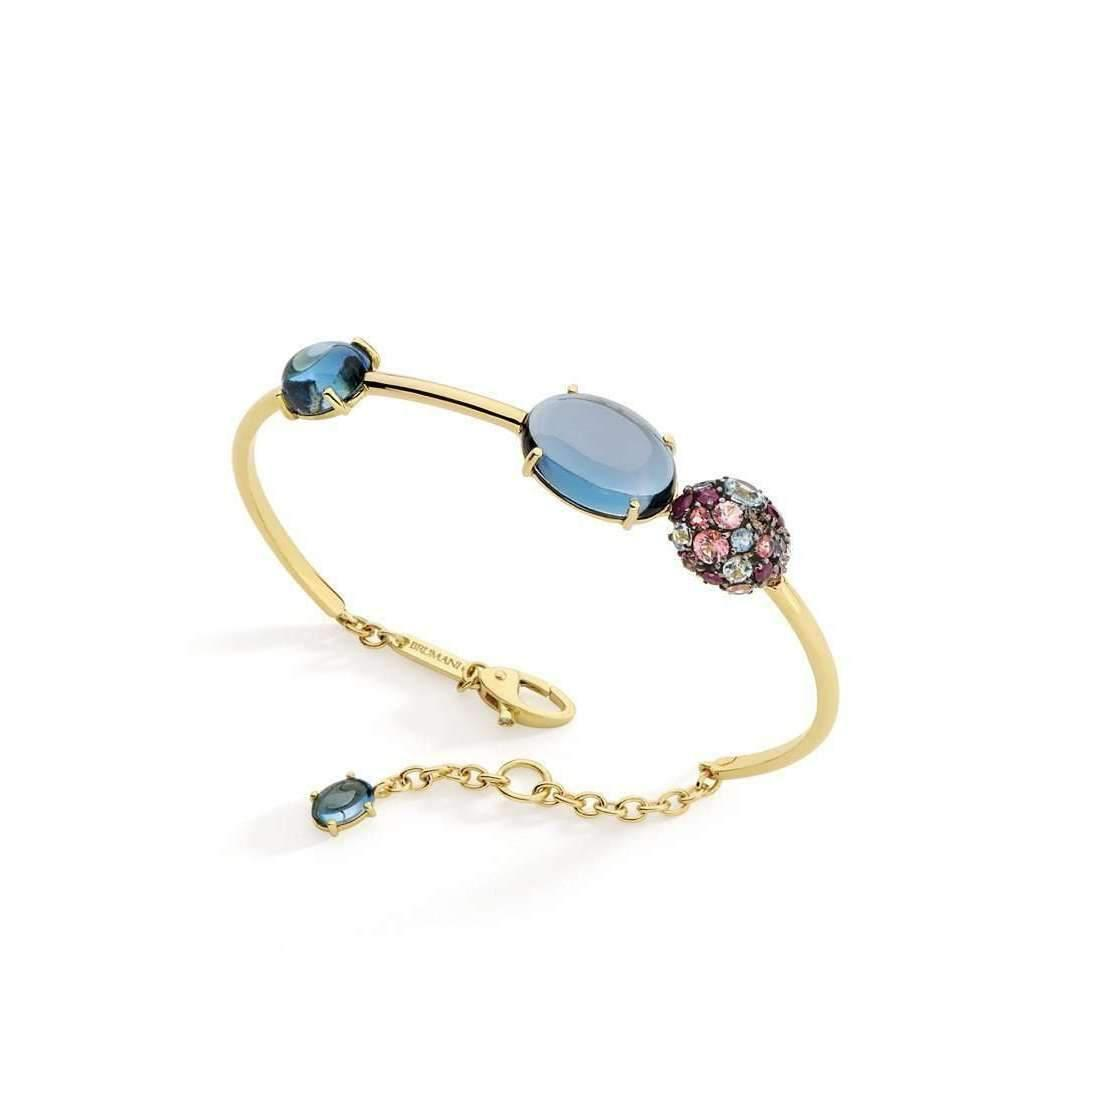 Brumani Baobab Bubbles Bracelet in Yellow Gold zikgGE0kKA